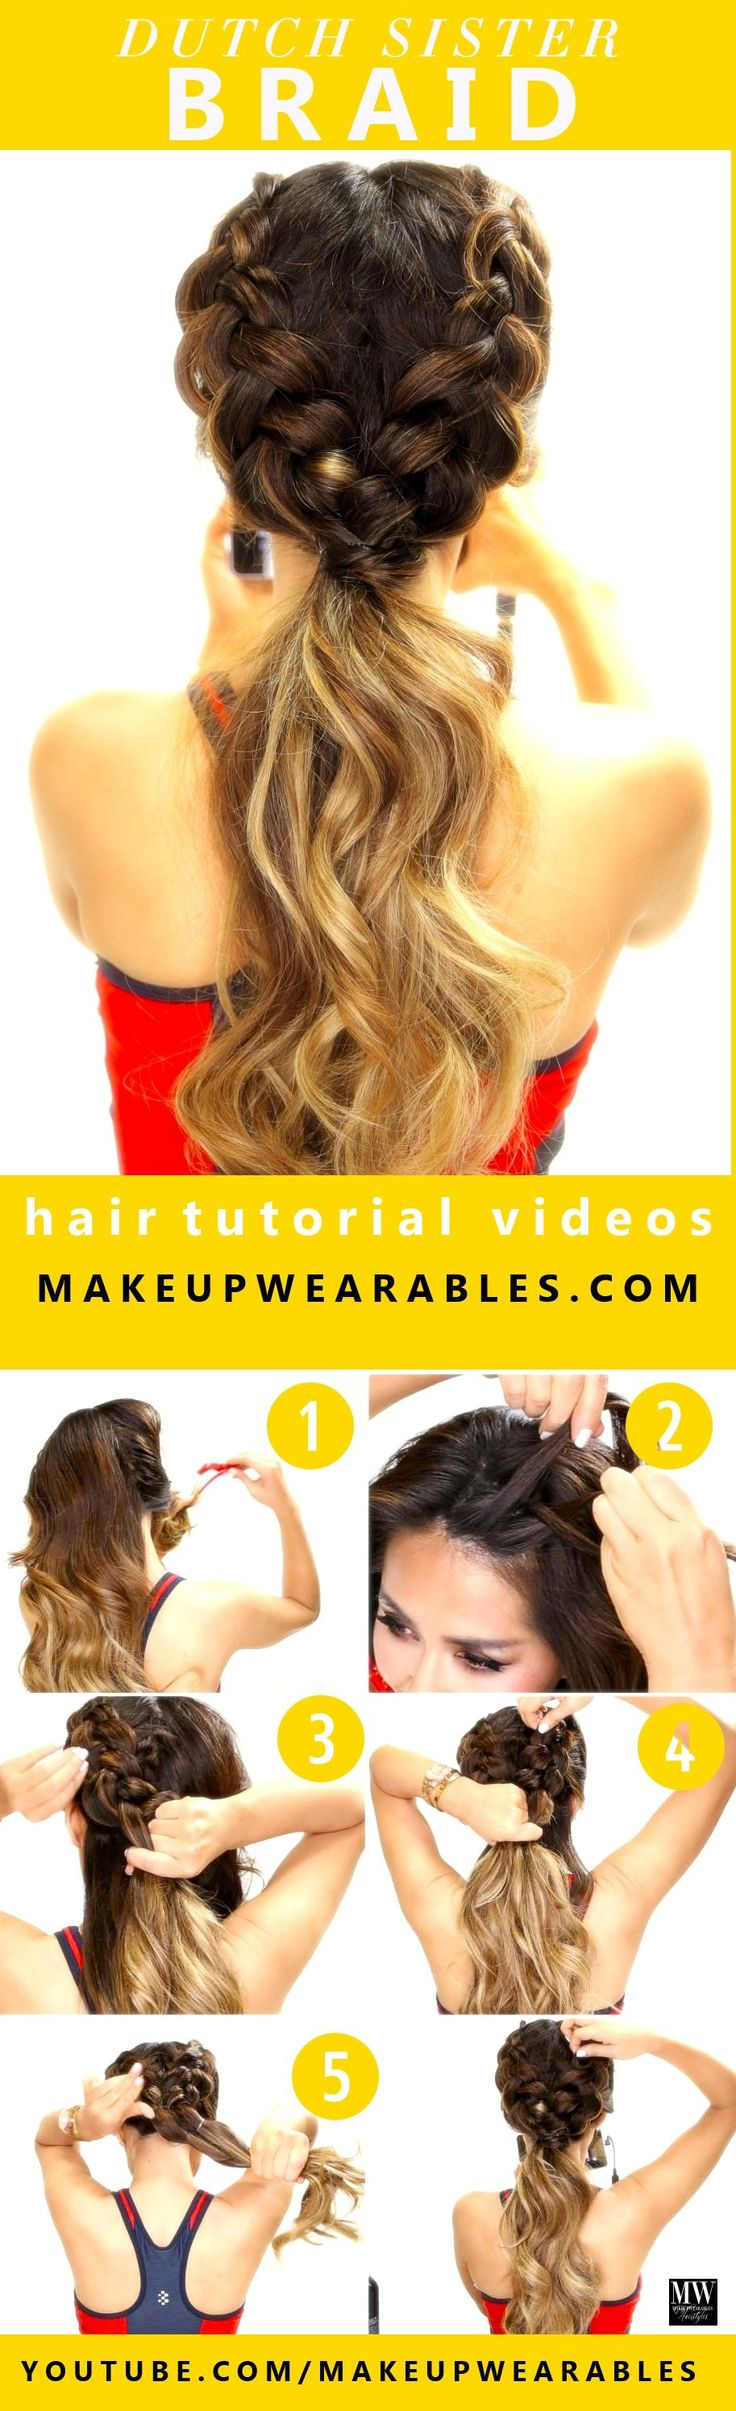 How to easy Dutch braid workout hairstyles for long medium hair - This hairstyle is a double Dutch braid ponytail well suited for school, sports, workouts, and fitness activities. All you short haired girls can rejoice, this can be done on short hair as w (low chignon short hair)